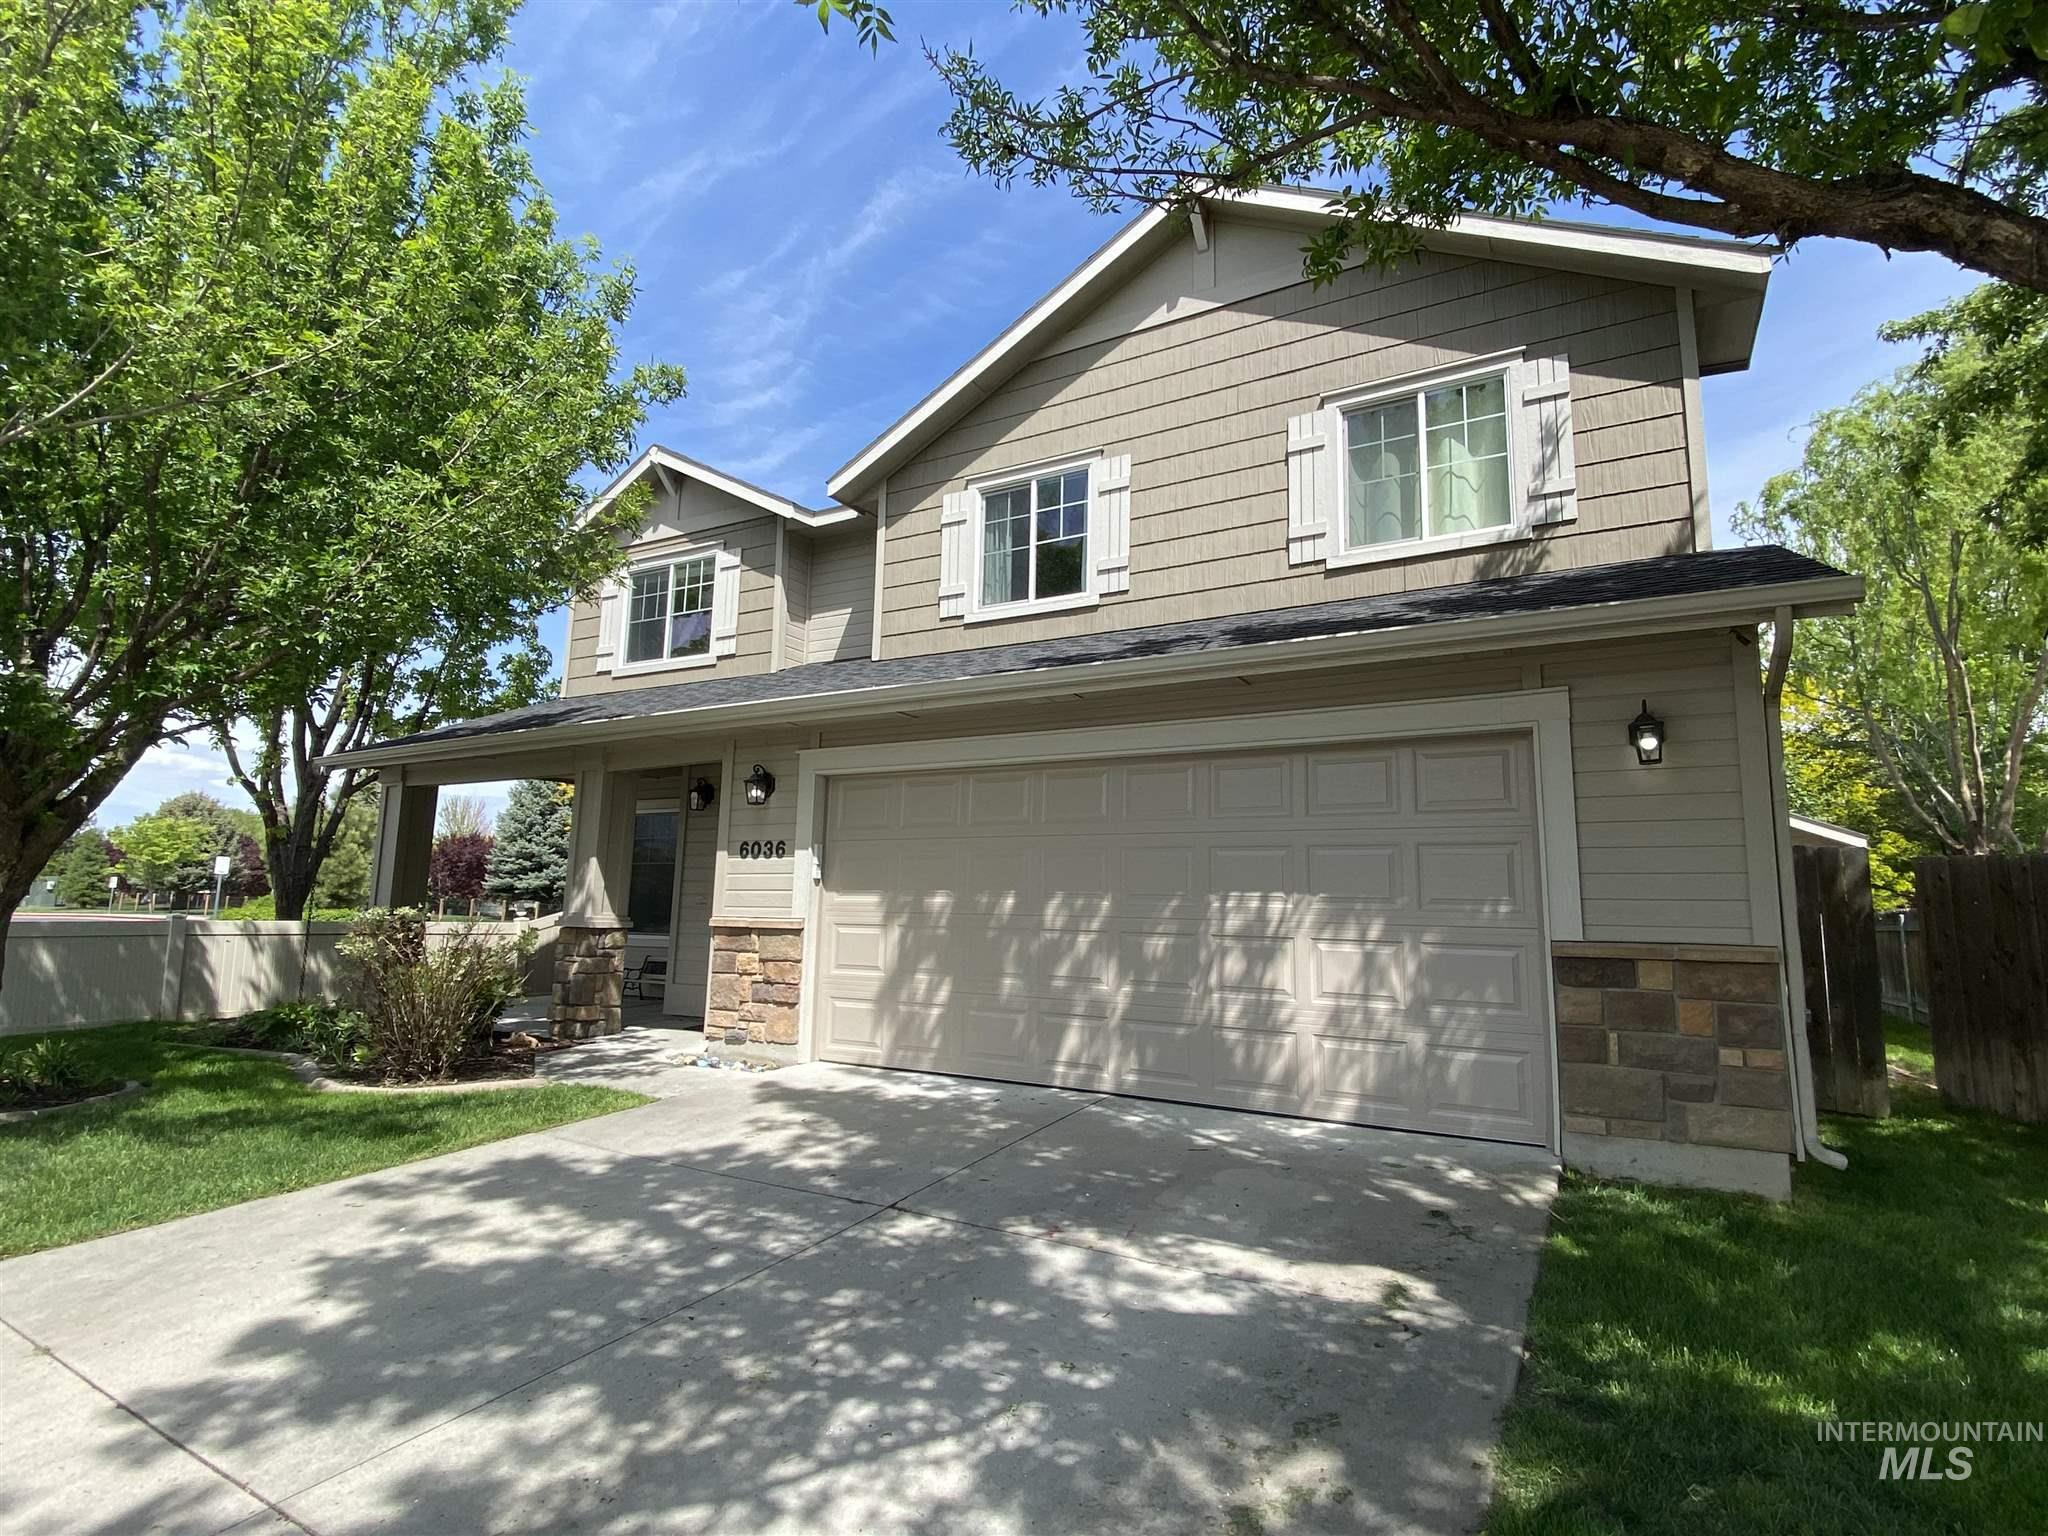 6036 N SILVER MAPLE Property Photo - Meridian, ID real estate listing